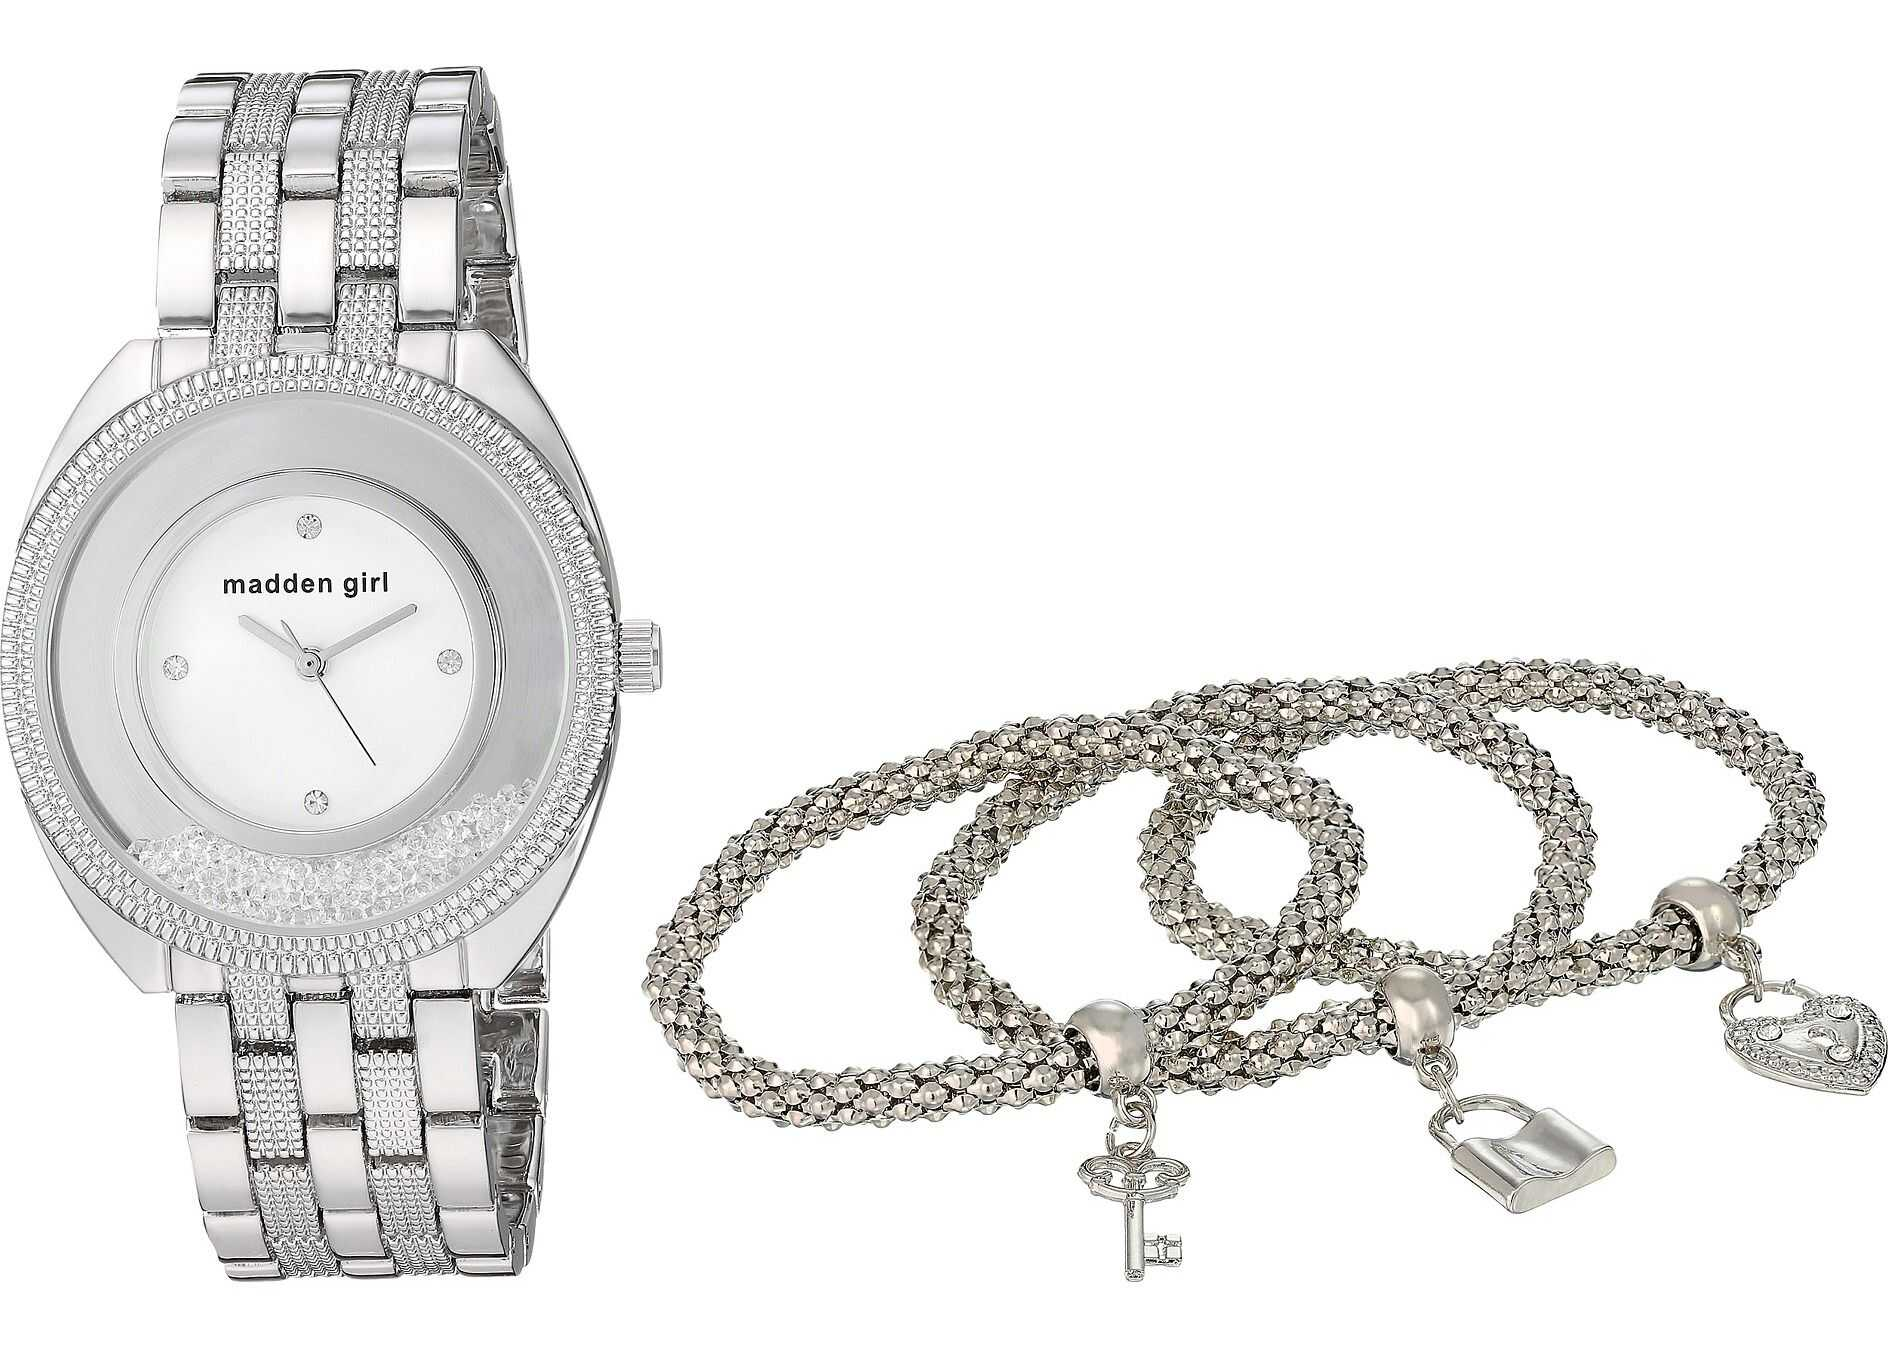 Steve Madden Madden Girl Watch with Charm and Stone Bracelet Set SMGS017 Silver